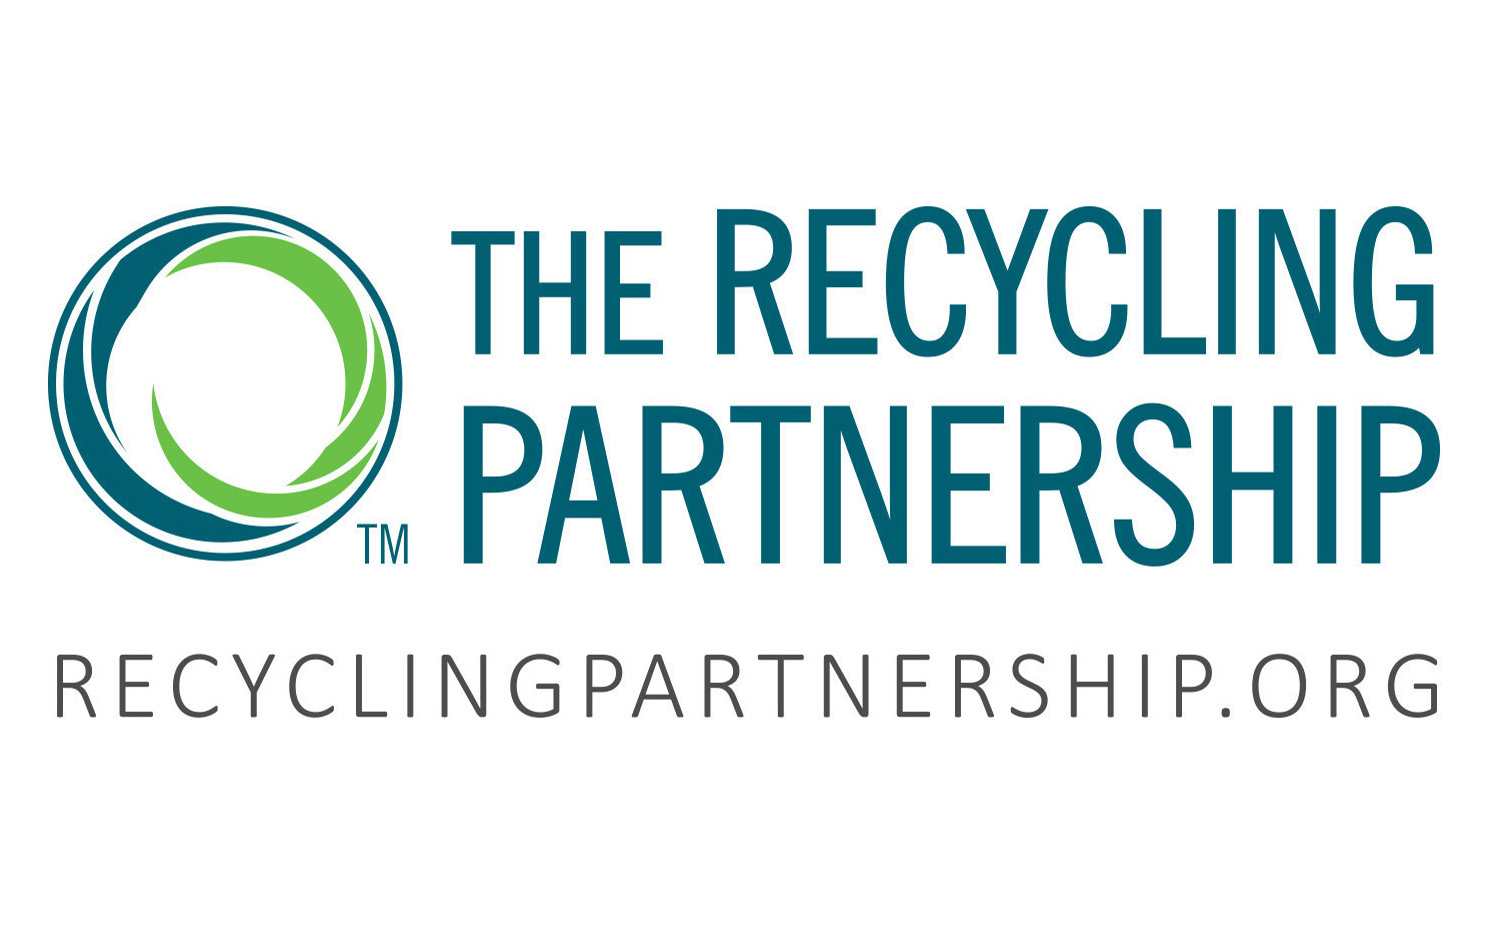 The Recycling Partnership creates first US roadmap - FoodBev ...